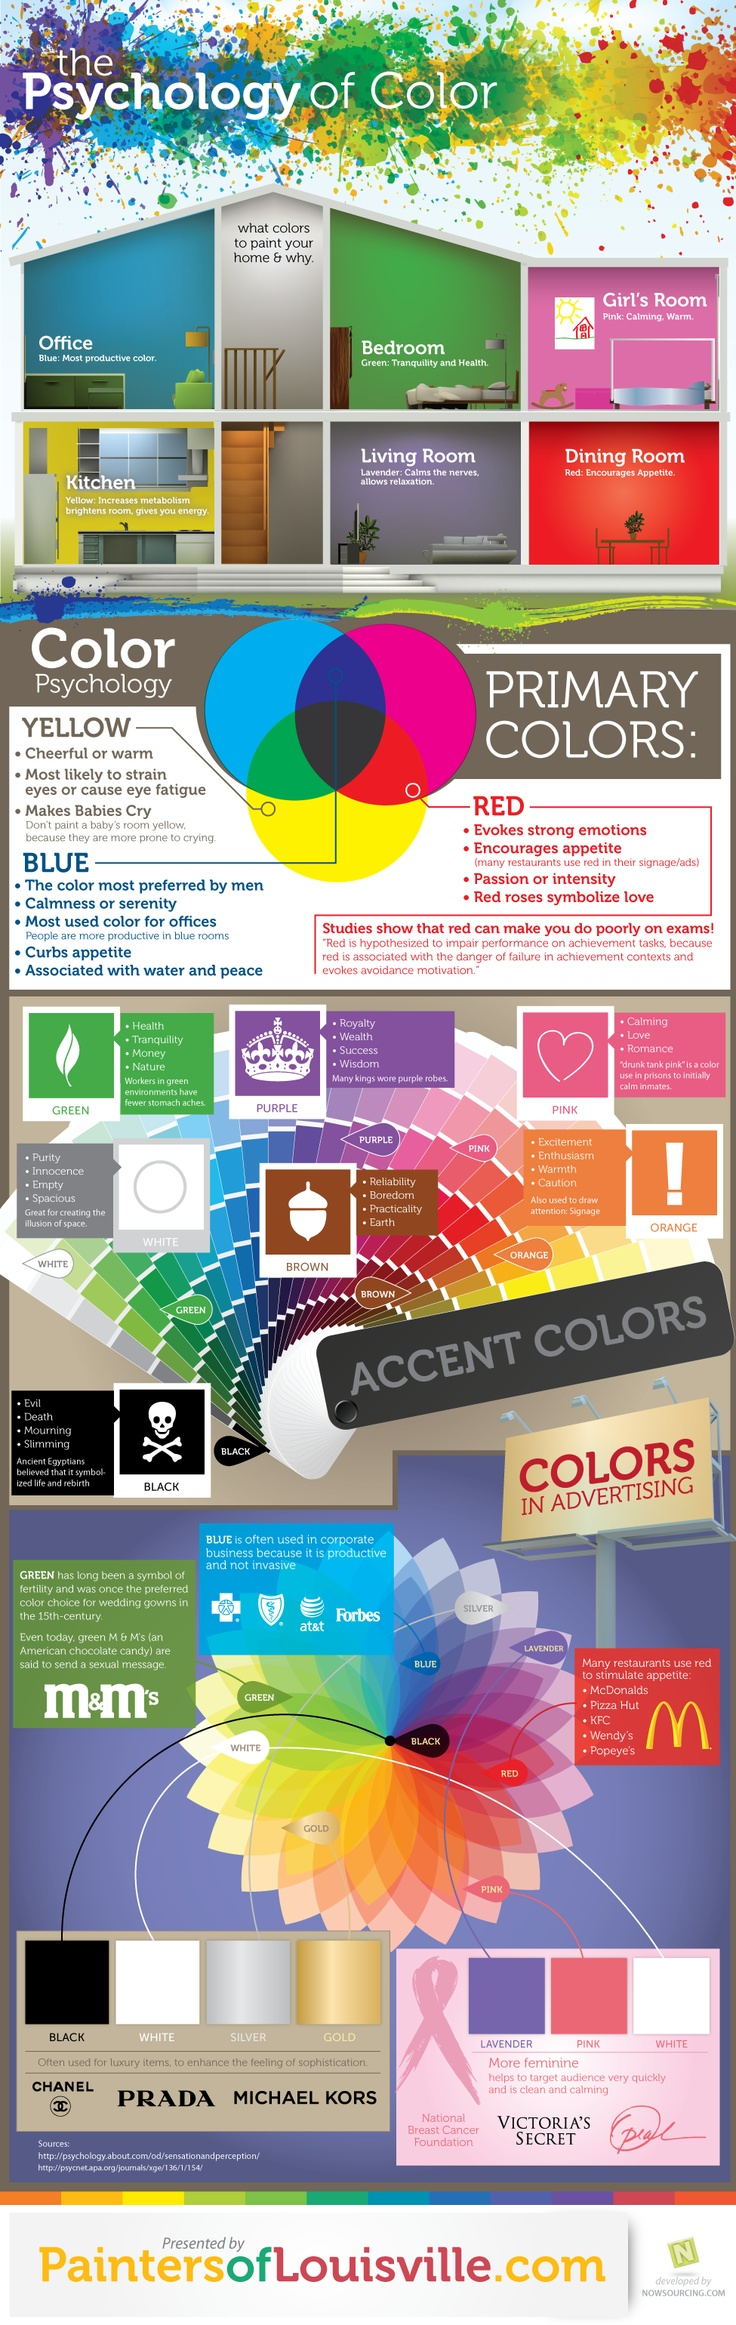 Psychology of Color. I knew some of these, but I had no idea that pink is calming enough to be used on prison inmates! Interesting!